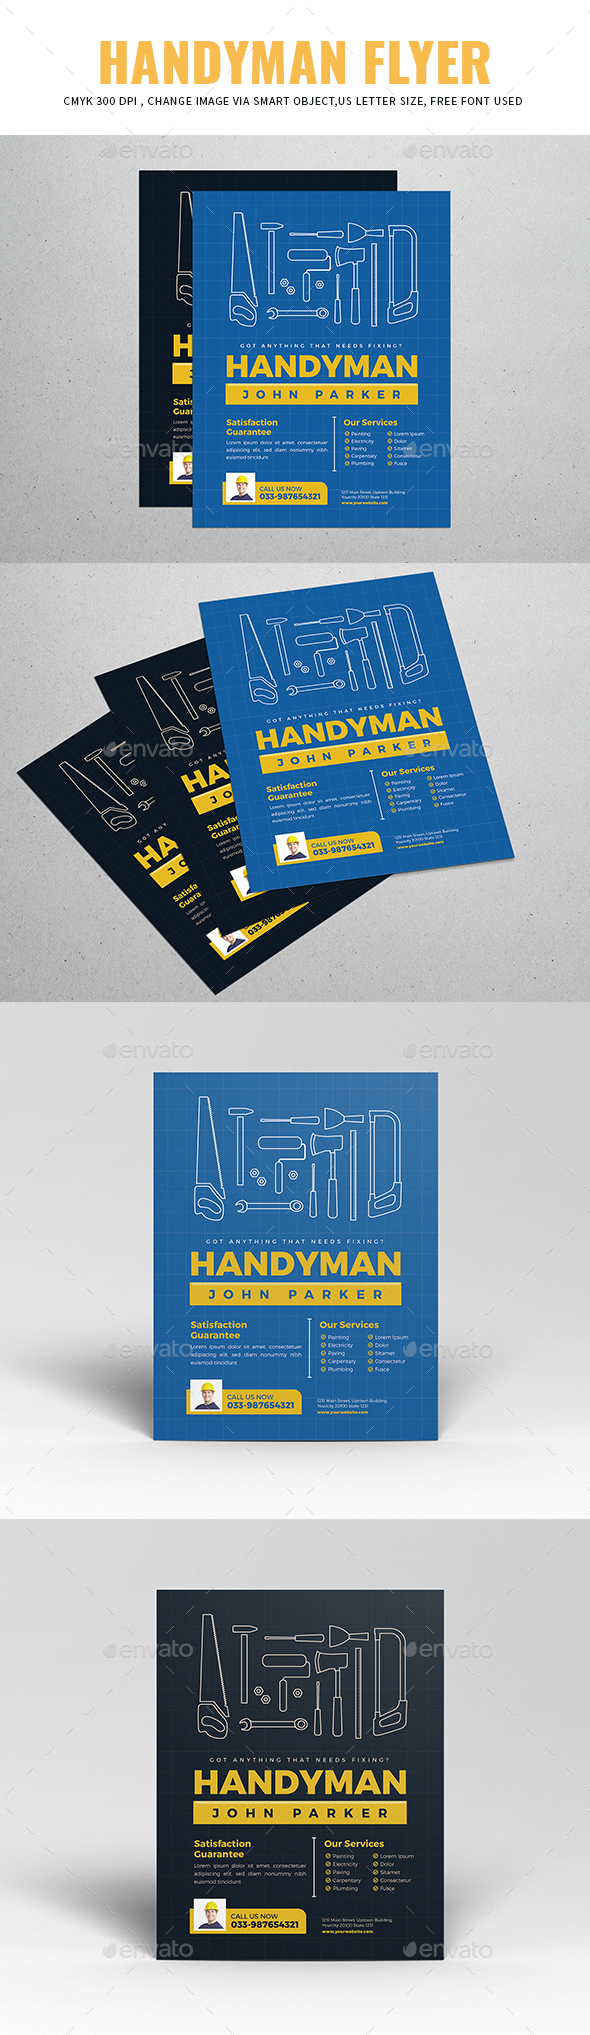 Handyman Flyer - Flyers Print Templates